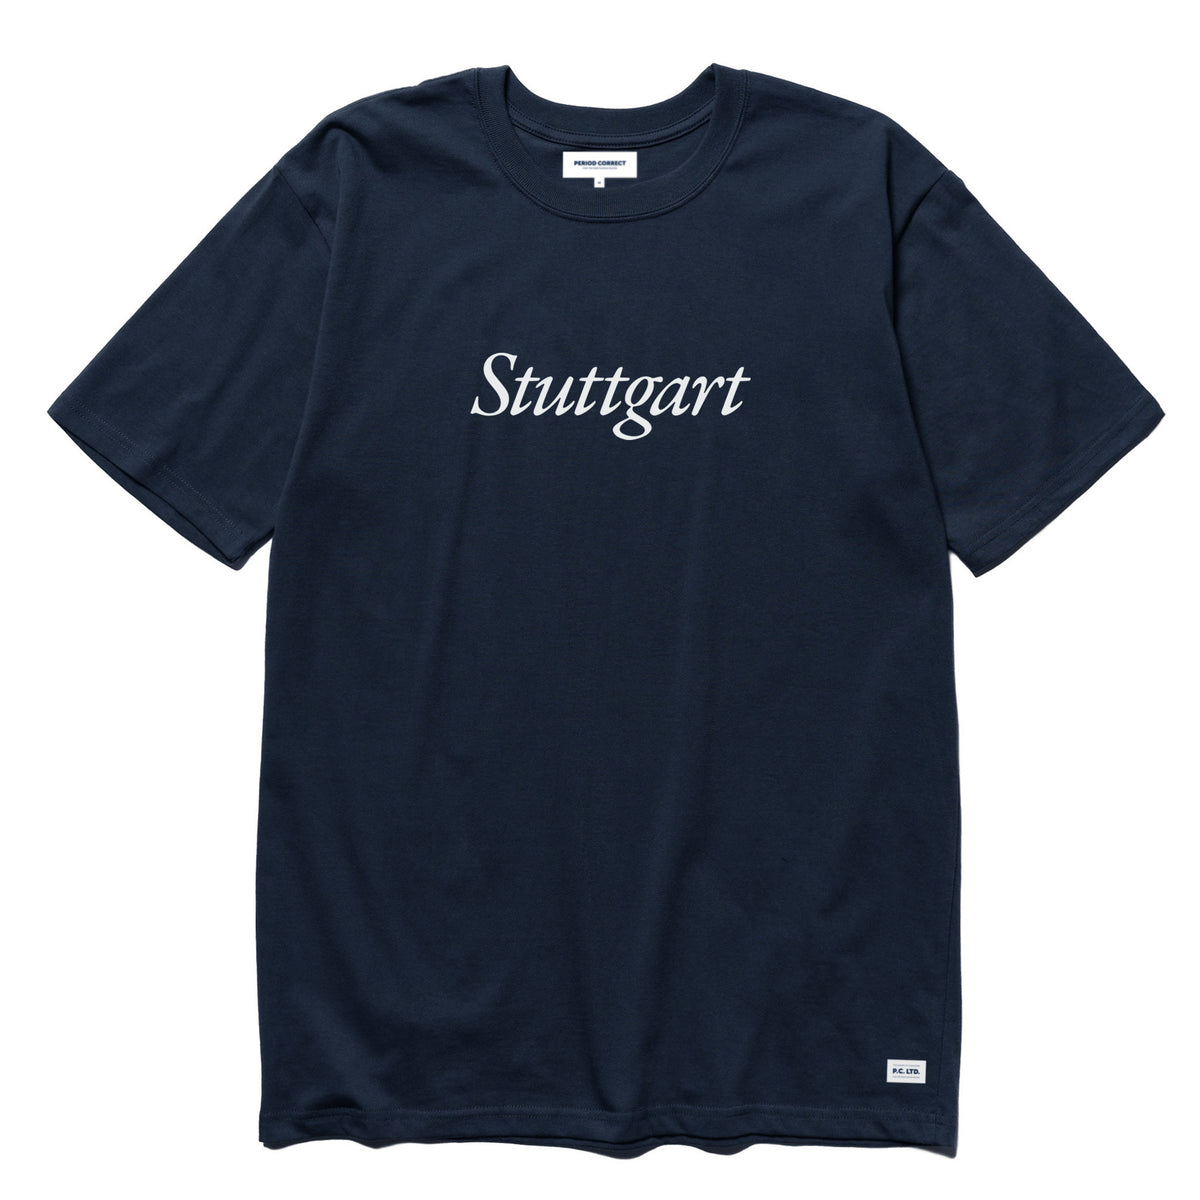 PC STUTTGART T-SHIRT NAVY